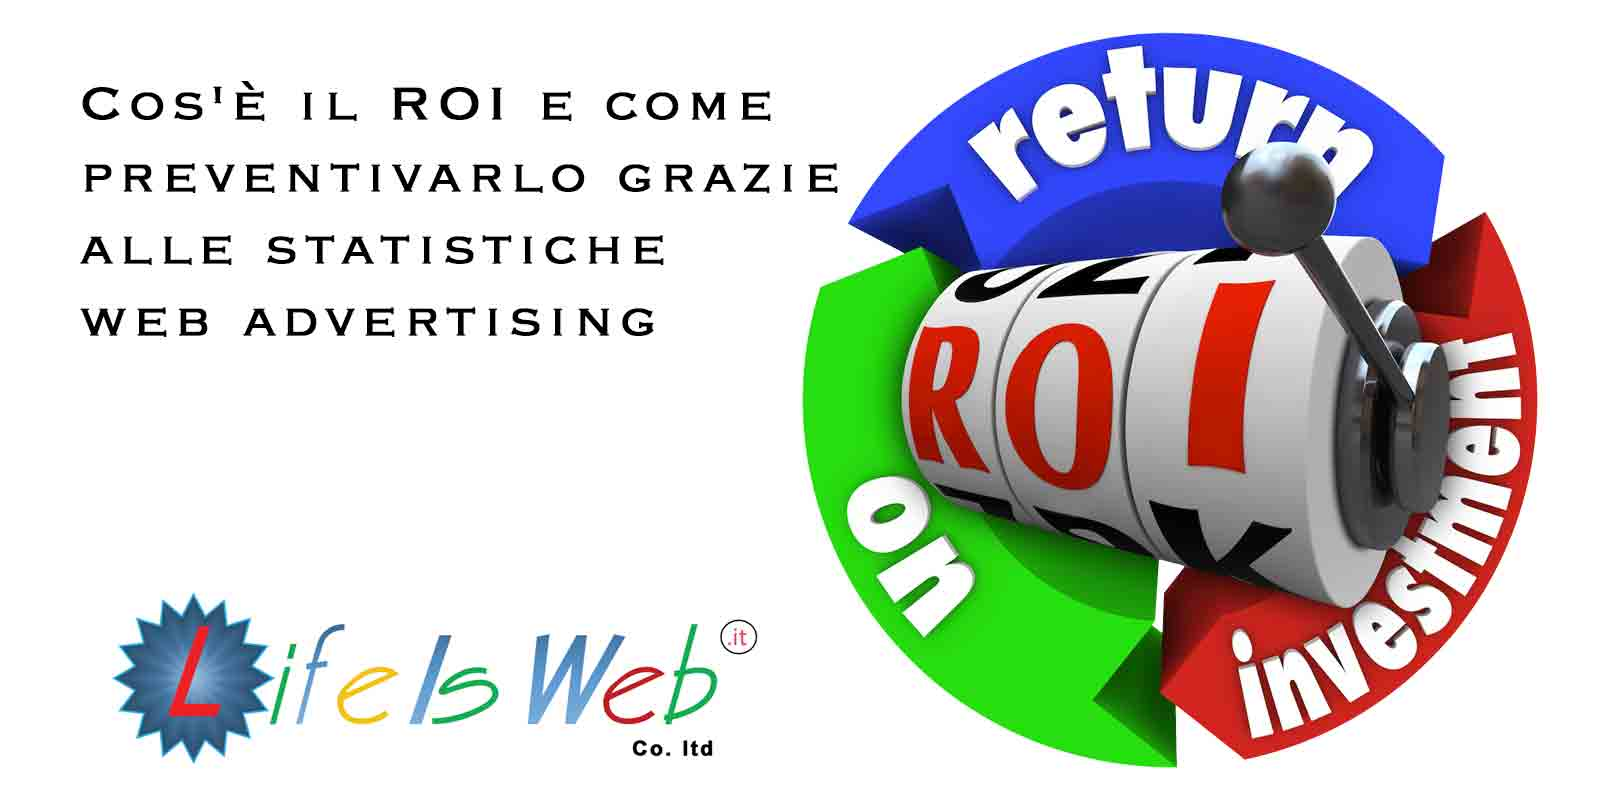 ROI - Cos'è il e come preventivarlo grazie alle statistiche web advertising